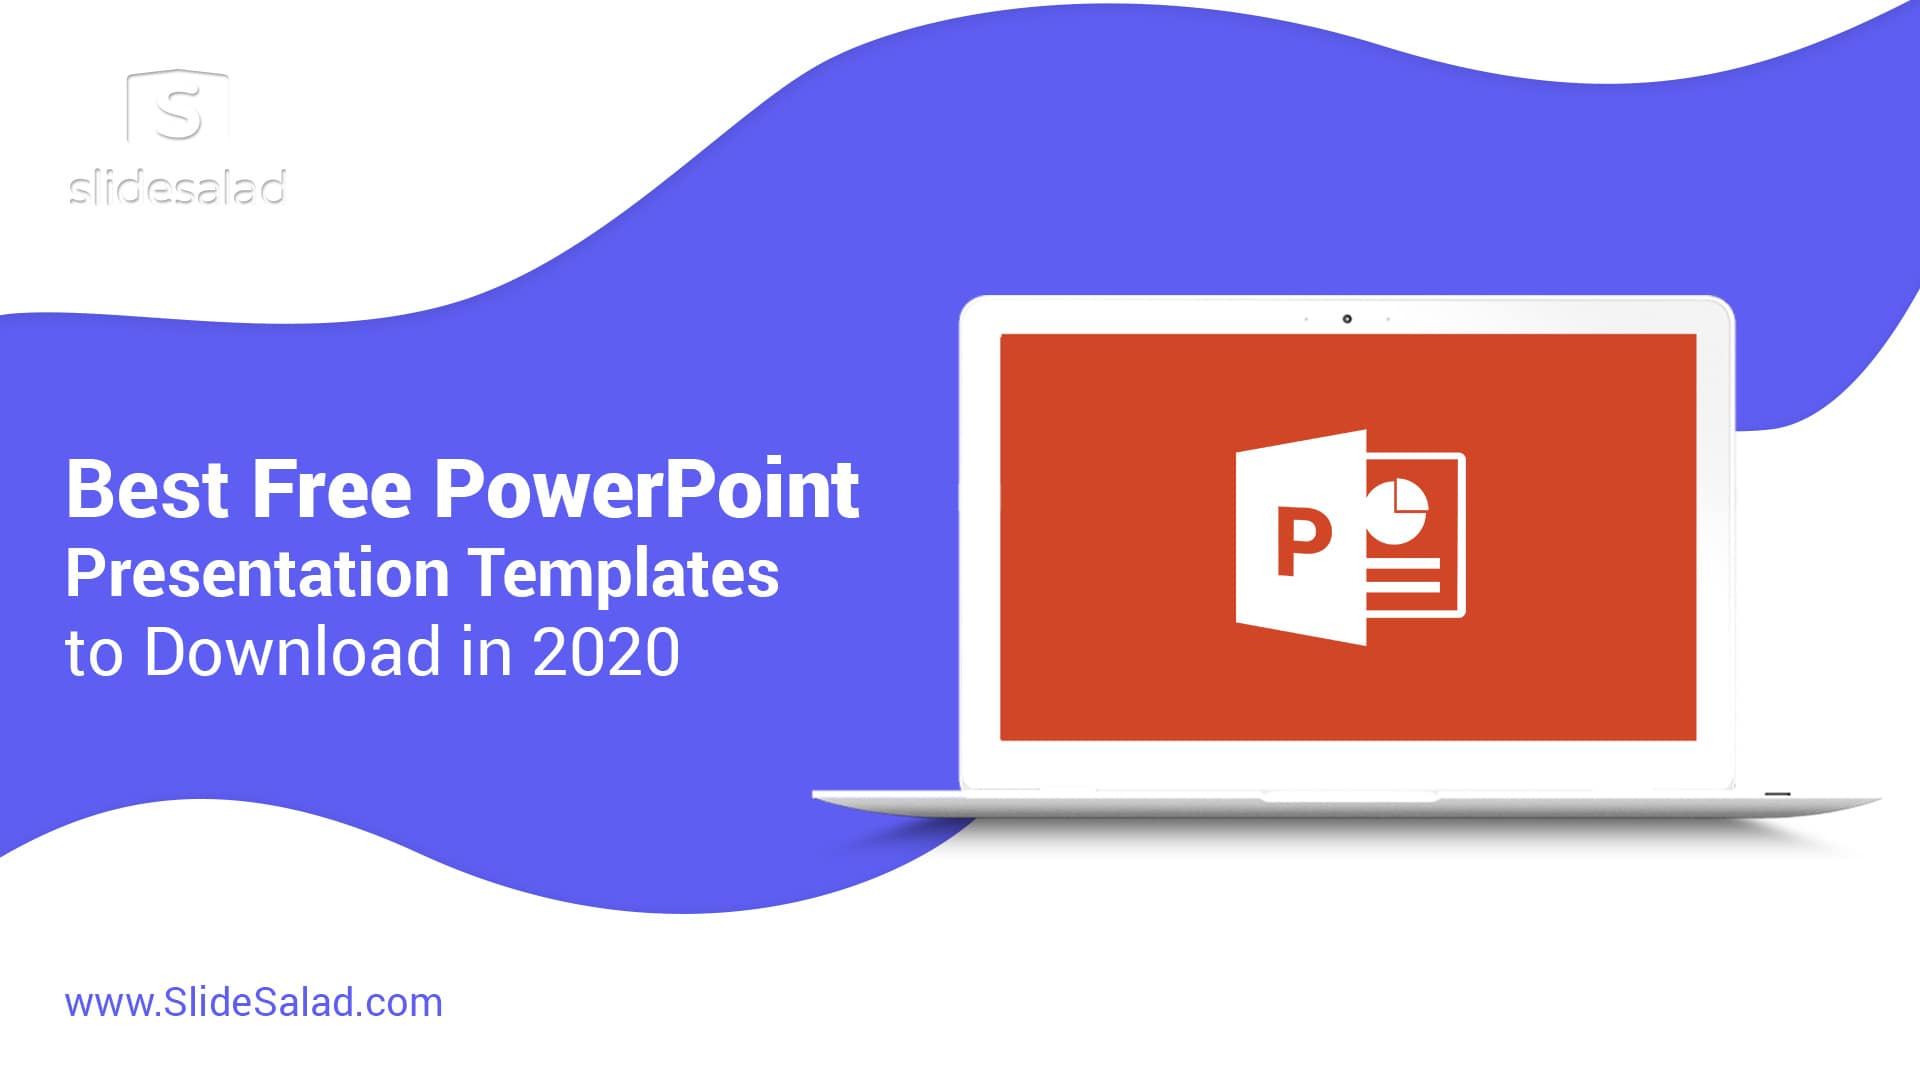 Best Free PowerPoint Presentation Templates To Download in 2020